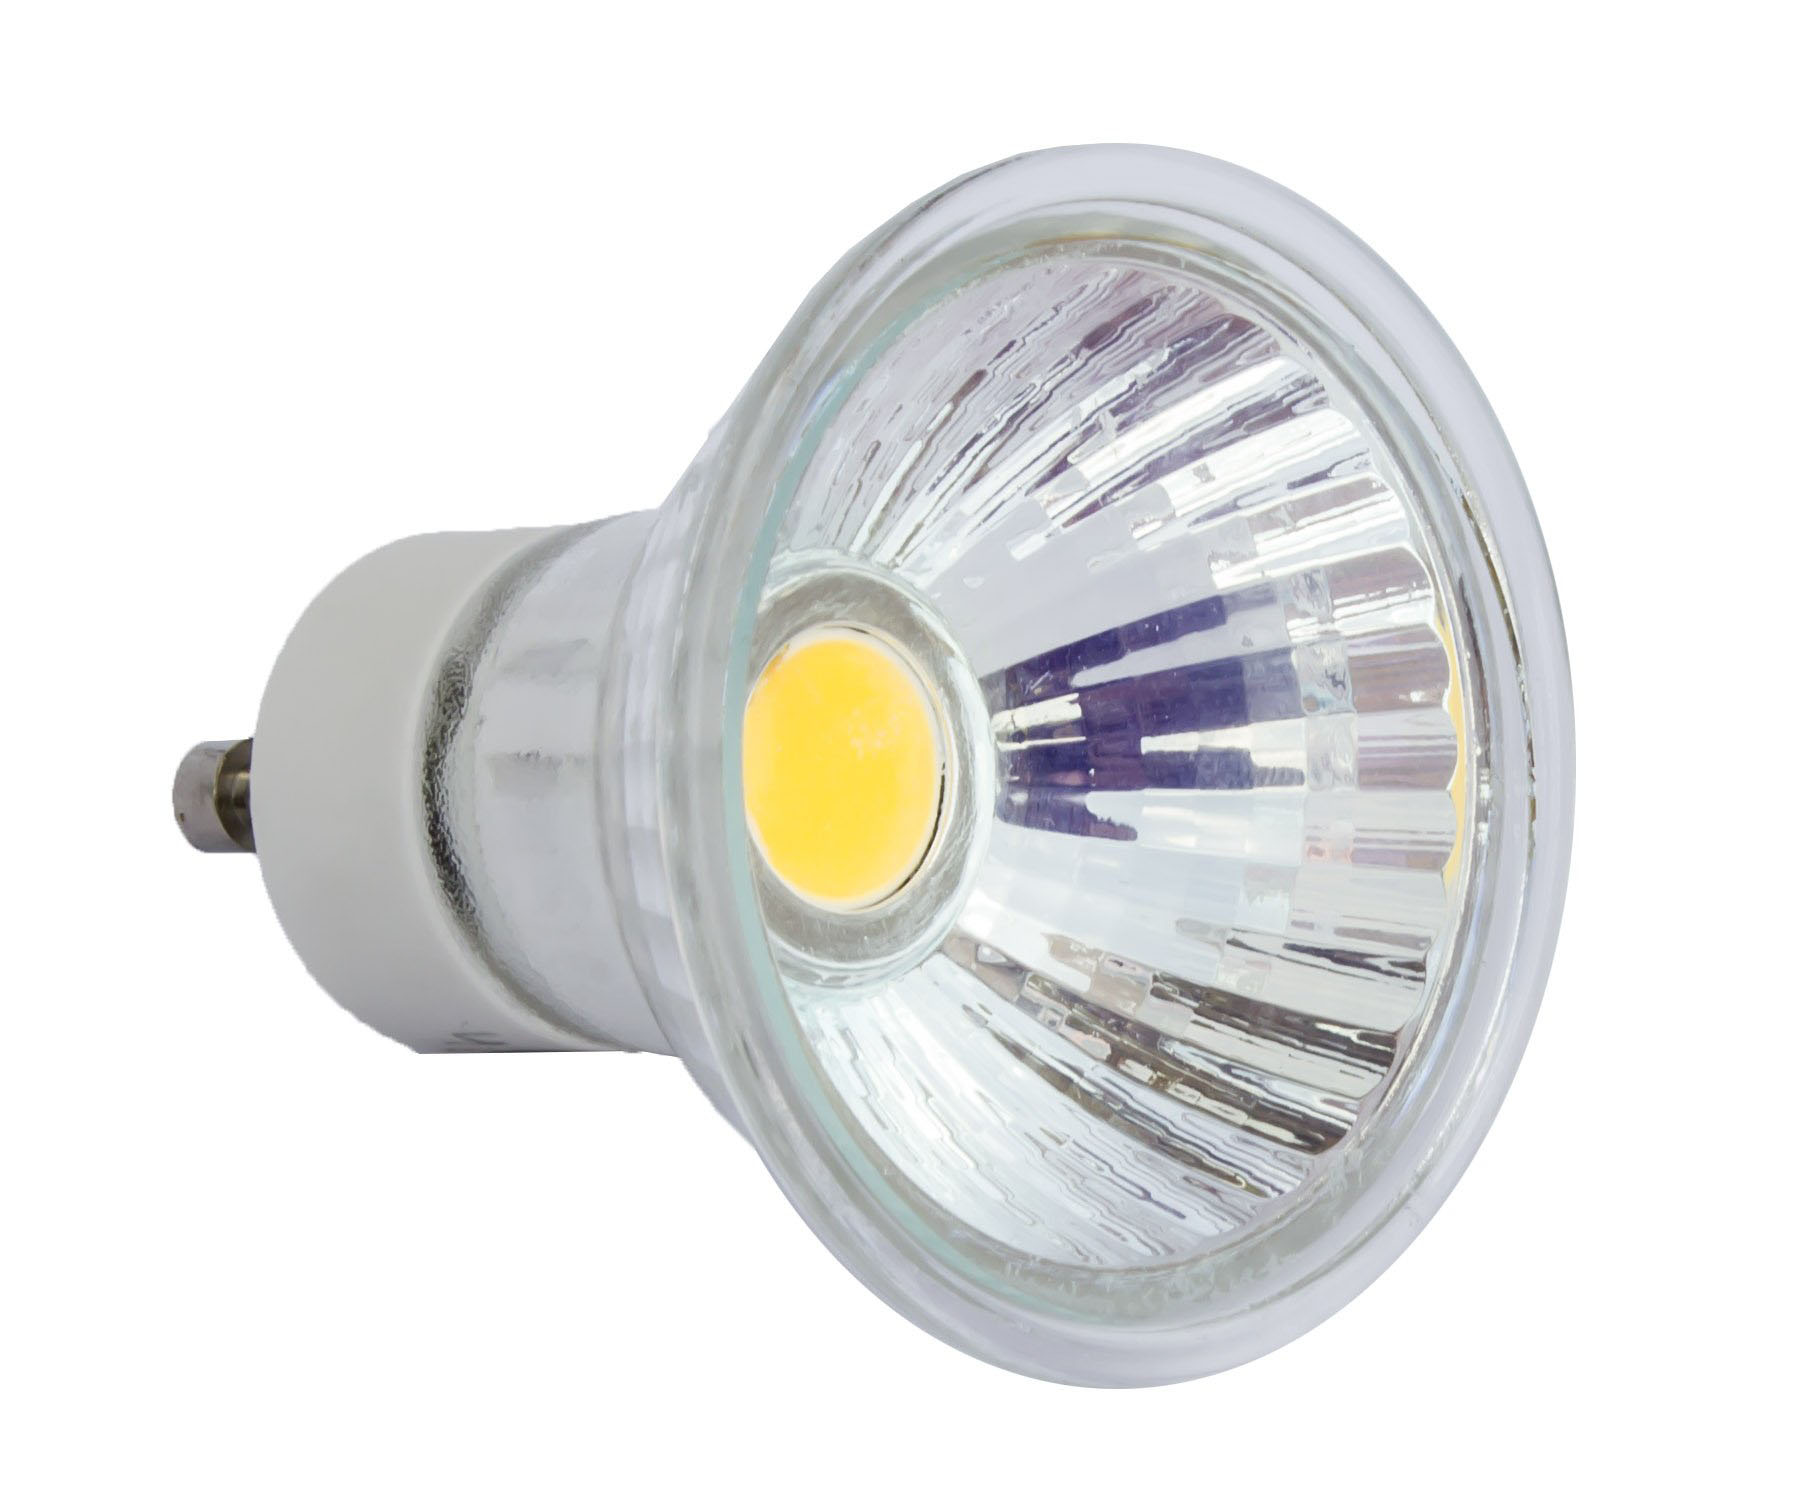 Led watt lumen cob gu warmweiß led cob w gu ww